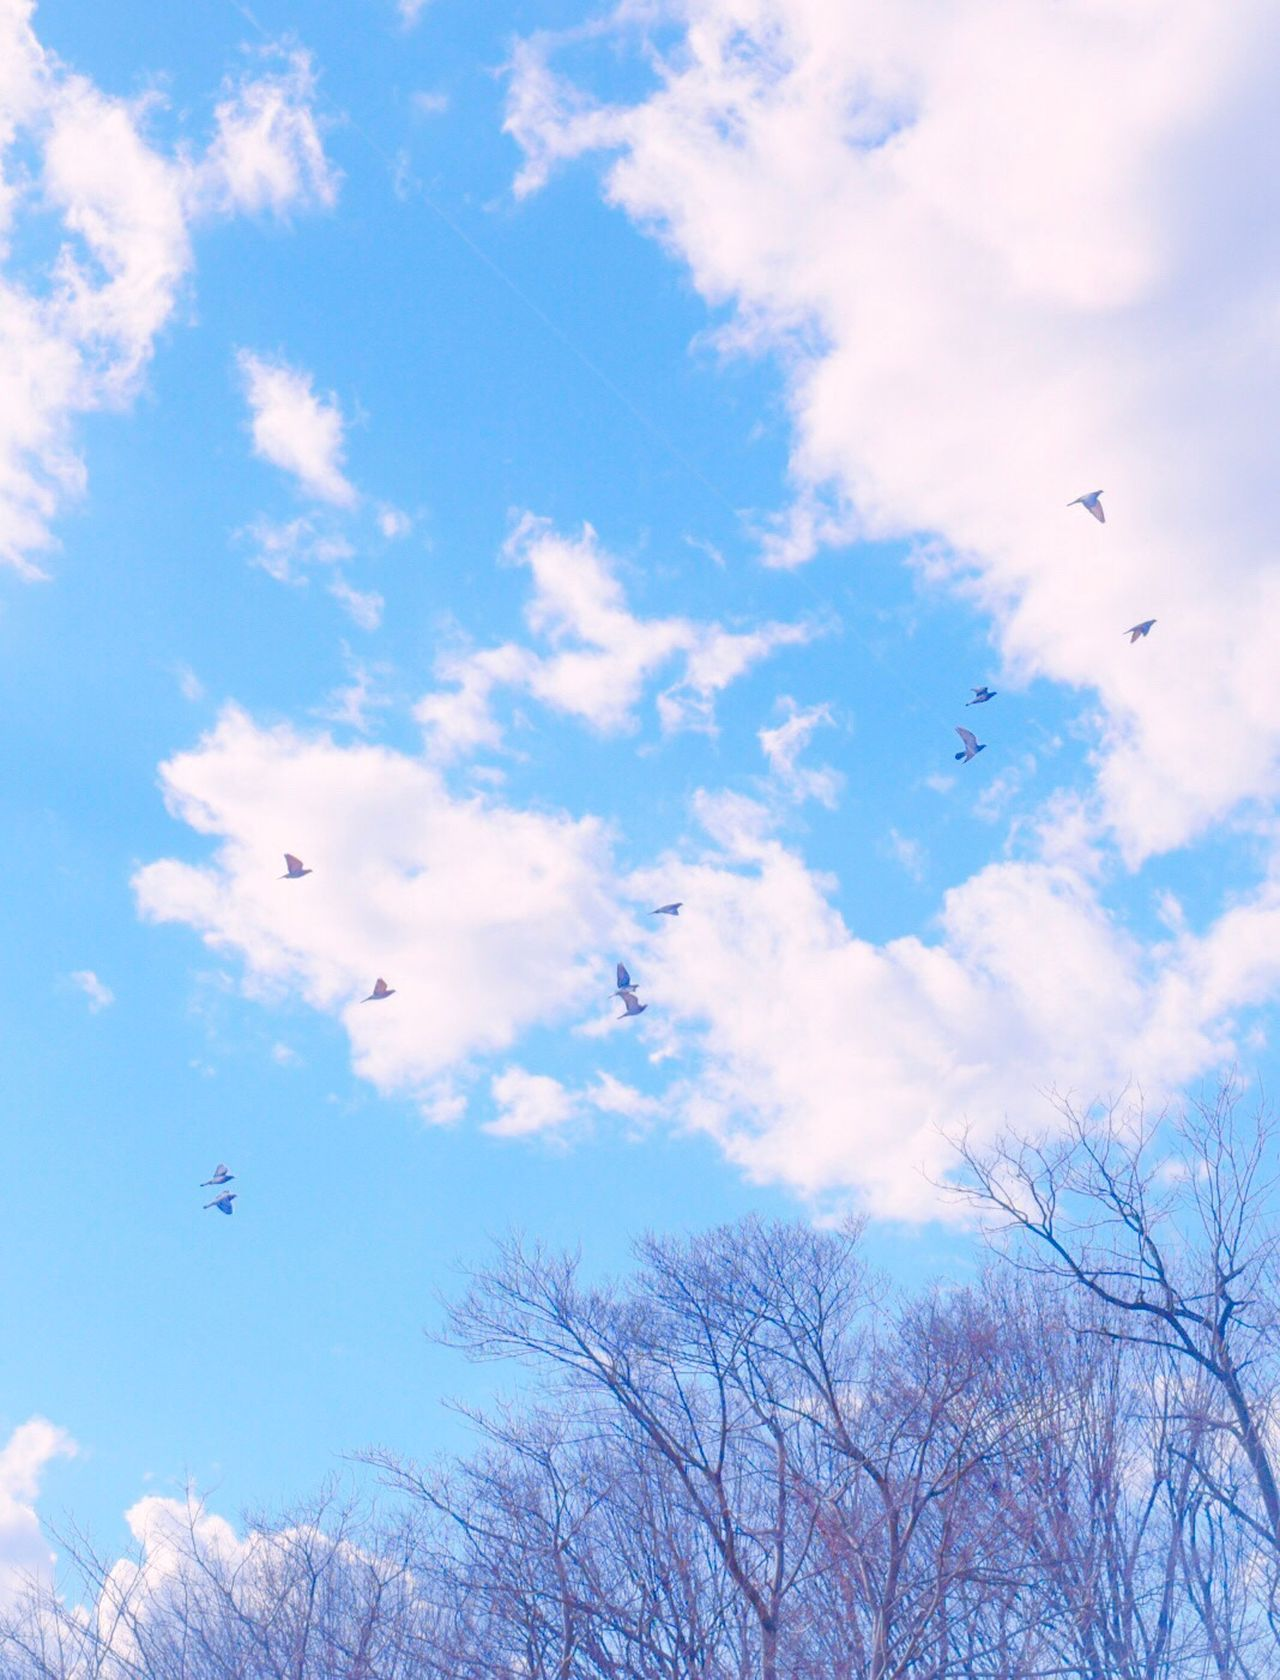 Flying Sky Low Angle View Tree Nature Bird Animal Themes No People Large Group Of Animals Beauty In Nature Animals In The Wild Day Outdoors Tranquility Cloud - Sky Migrating Flock Of Birds